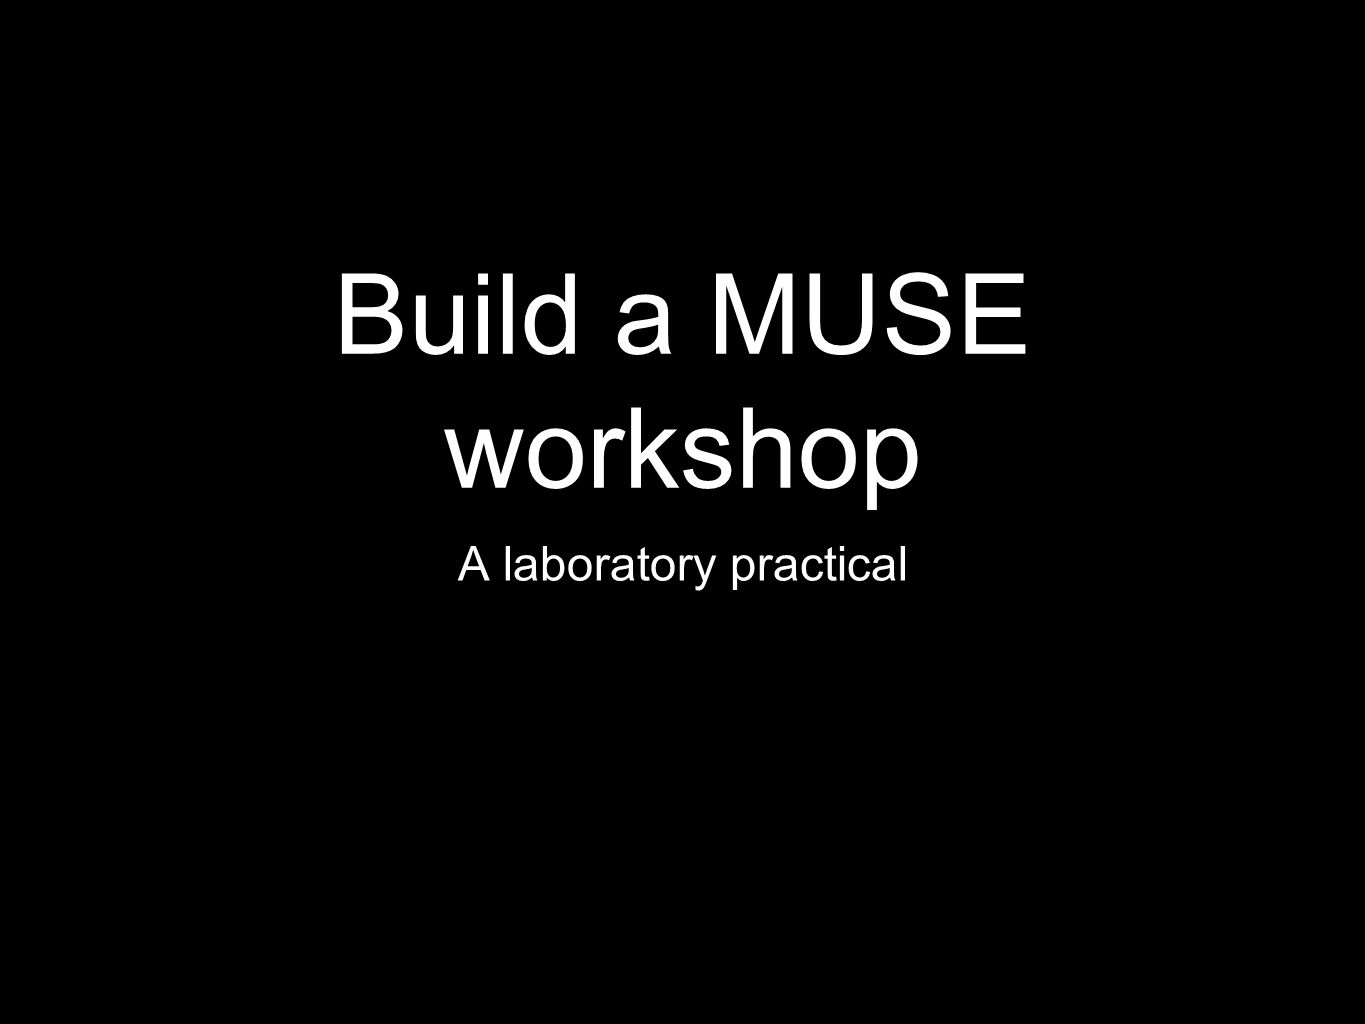 Build a MUSE workshop A laboratory practical